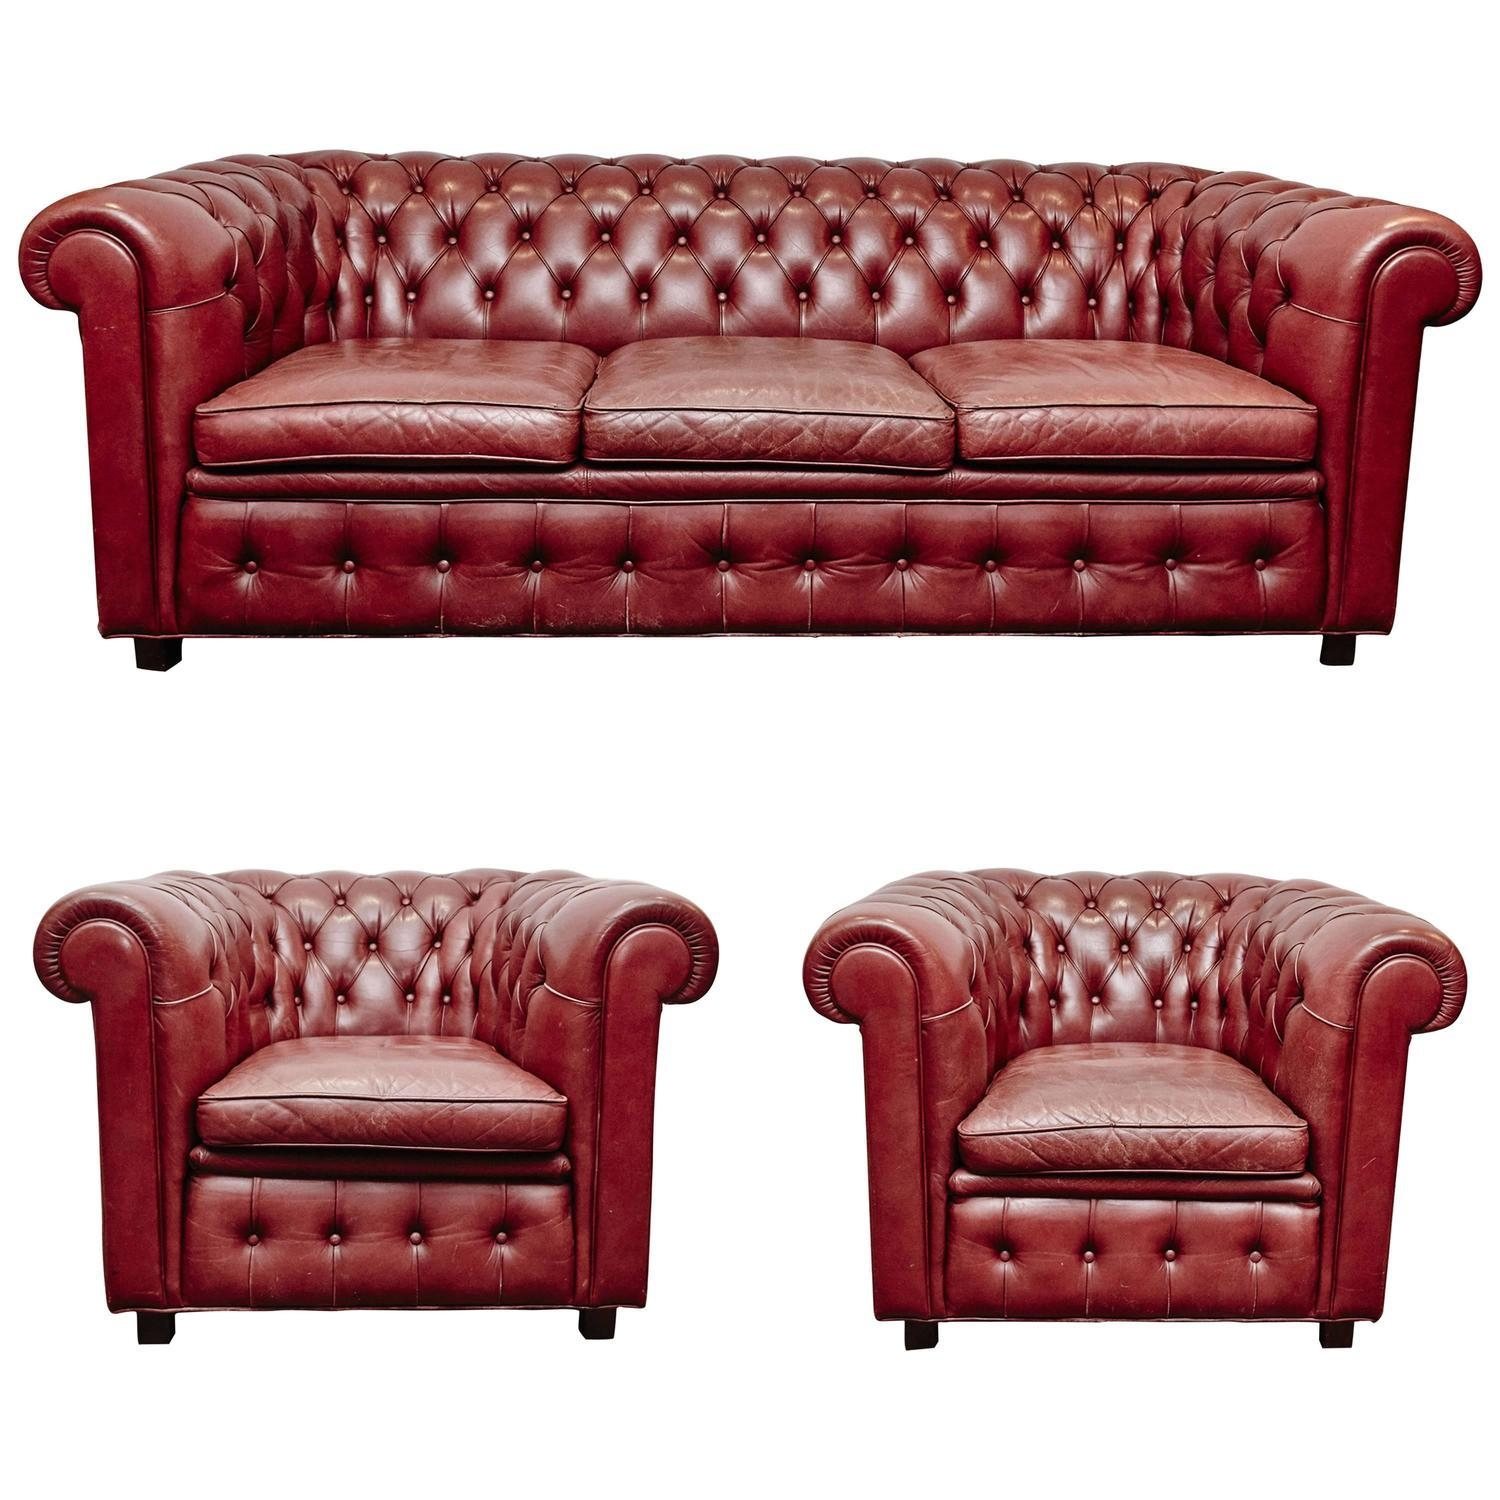 Leather Chesterfield Sofa And Pair Of Armchairsarne Norell At With Red Chesterfield Chairs (View 11 of 20)